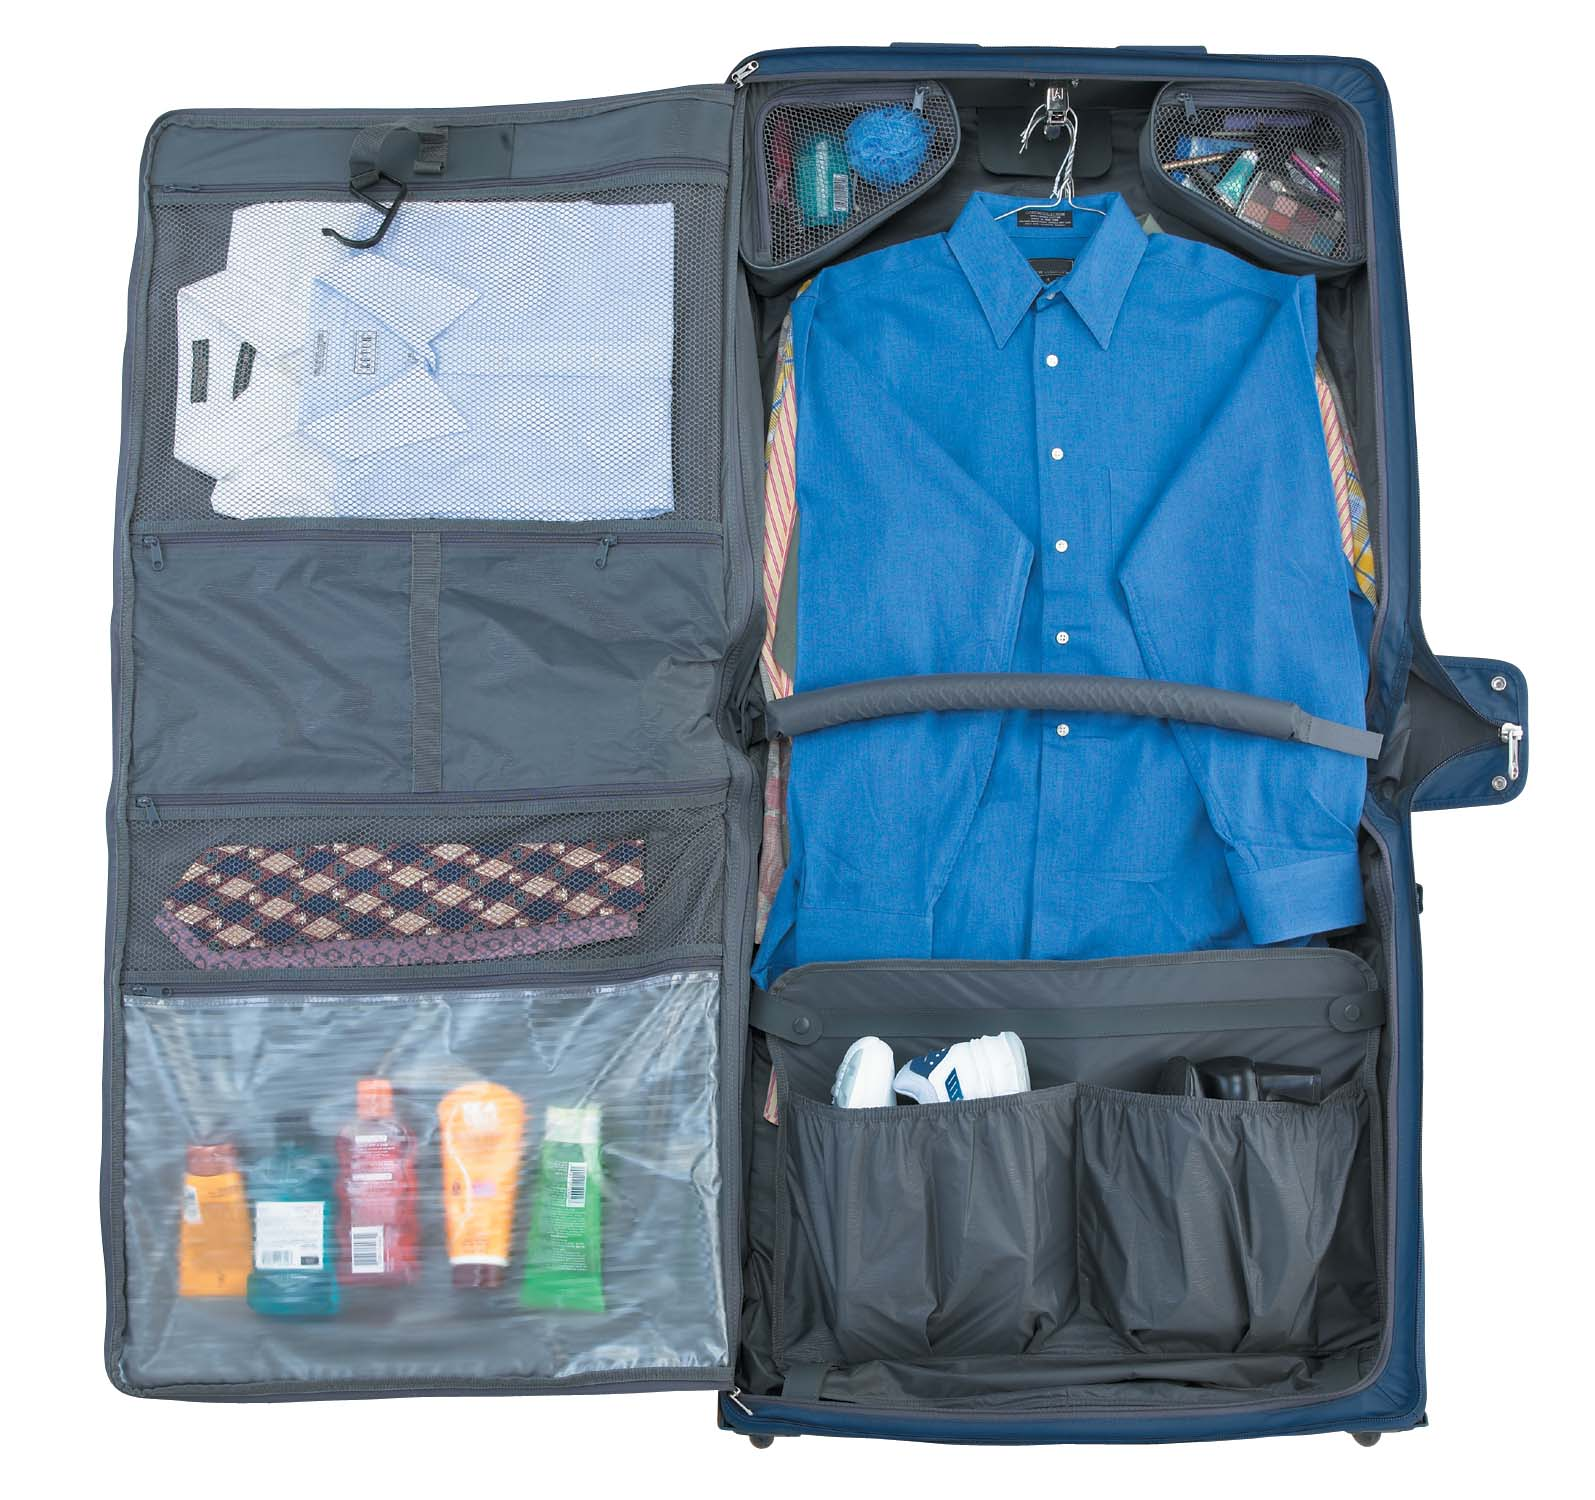 Travel Luggage Garment Bags 14